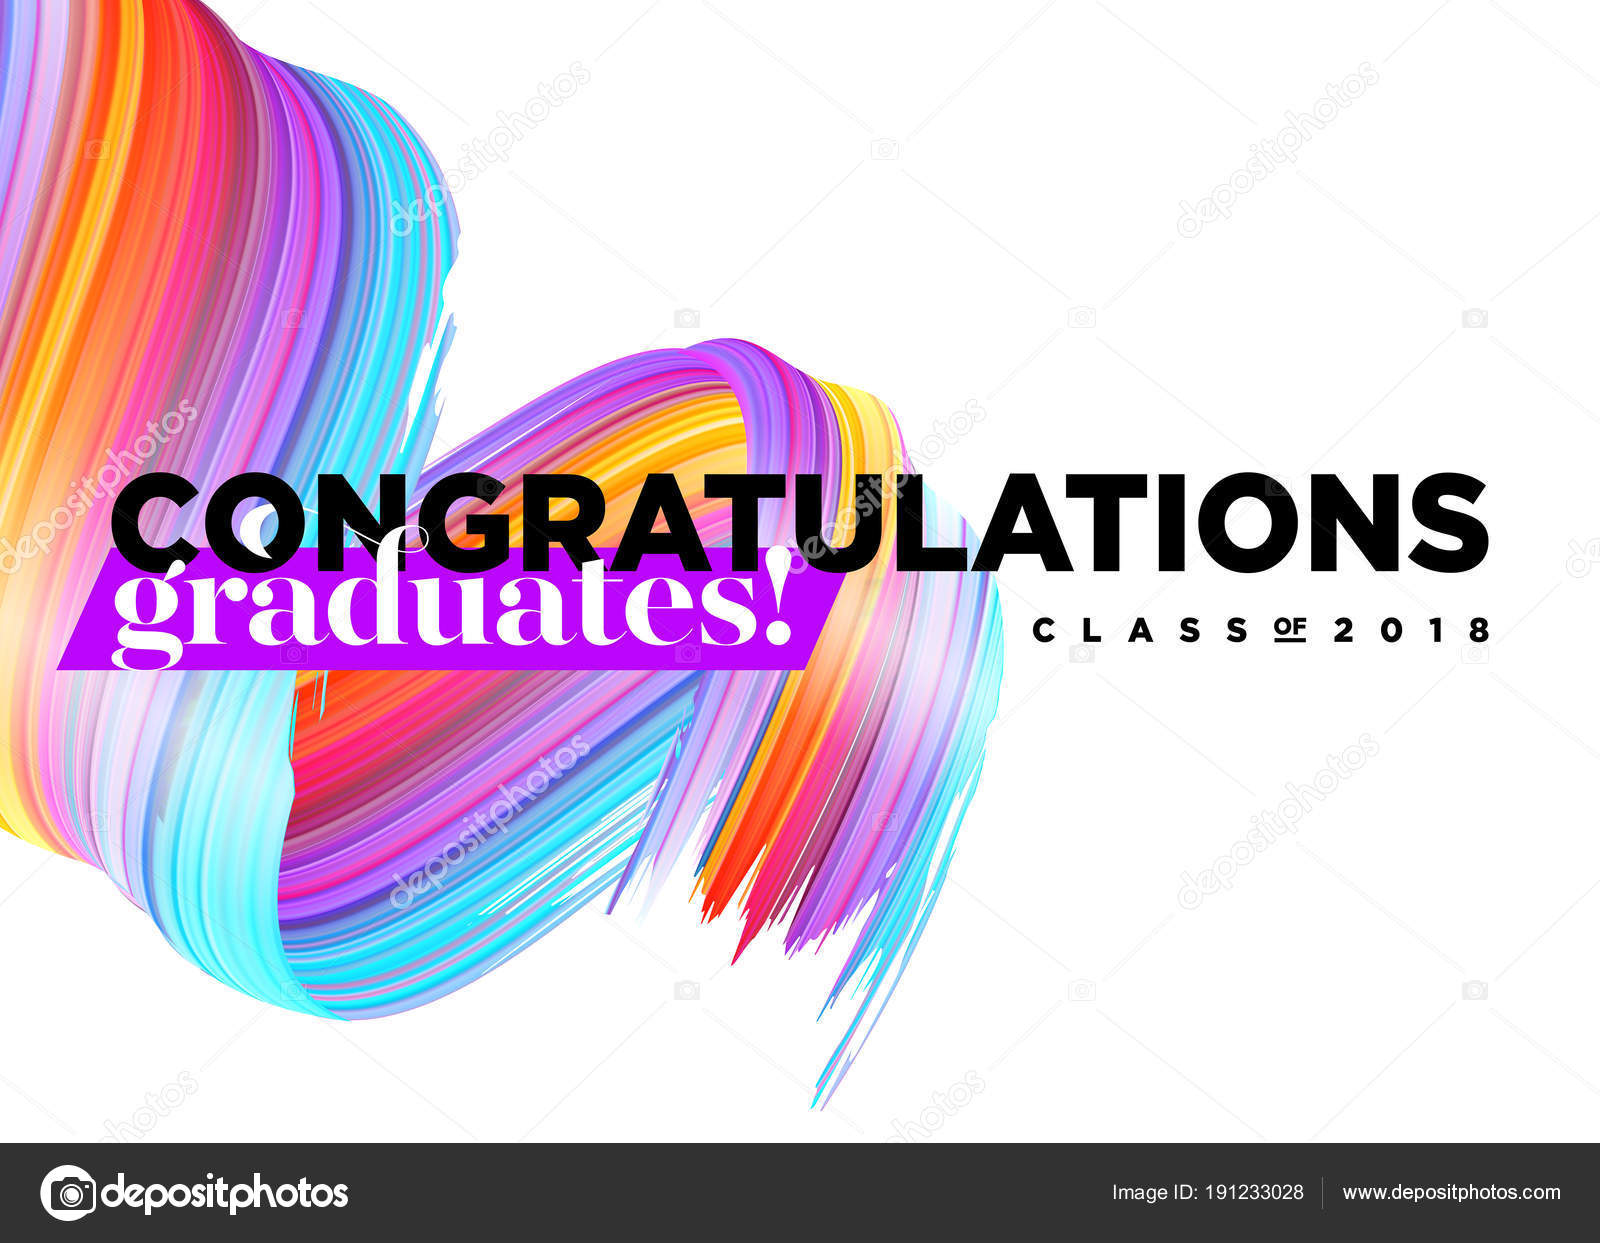 Congratulations Graduates Class of 2018 Vector Logo. Creative Party ...